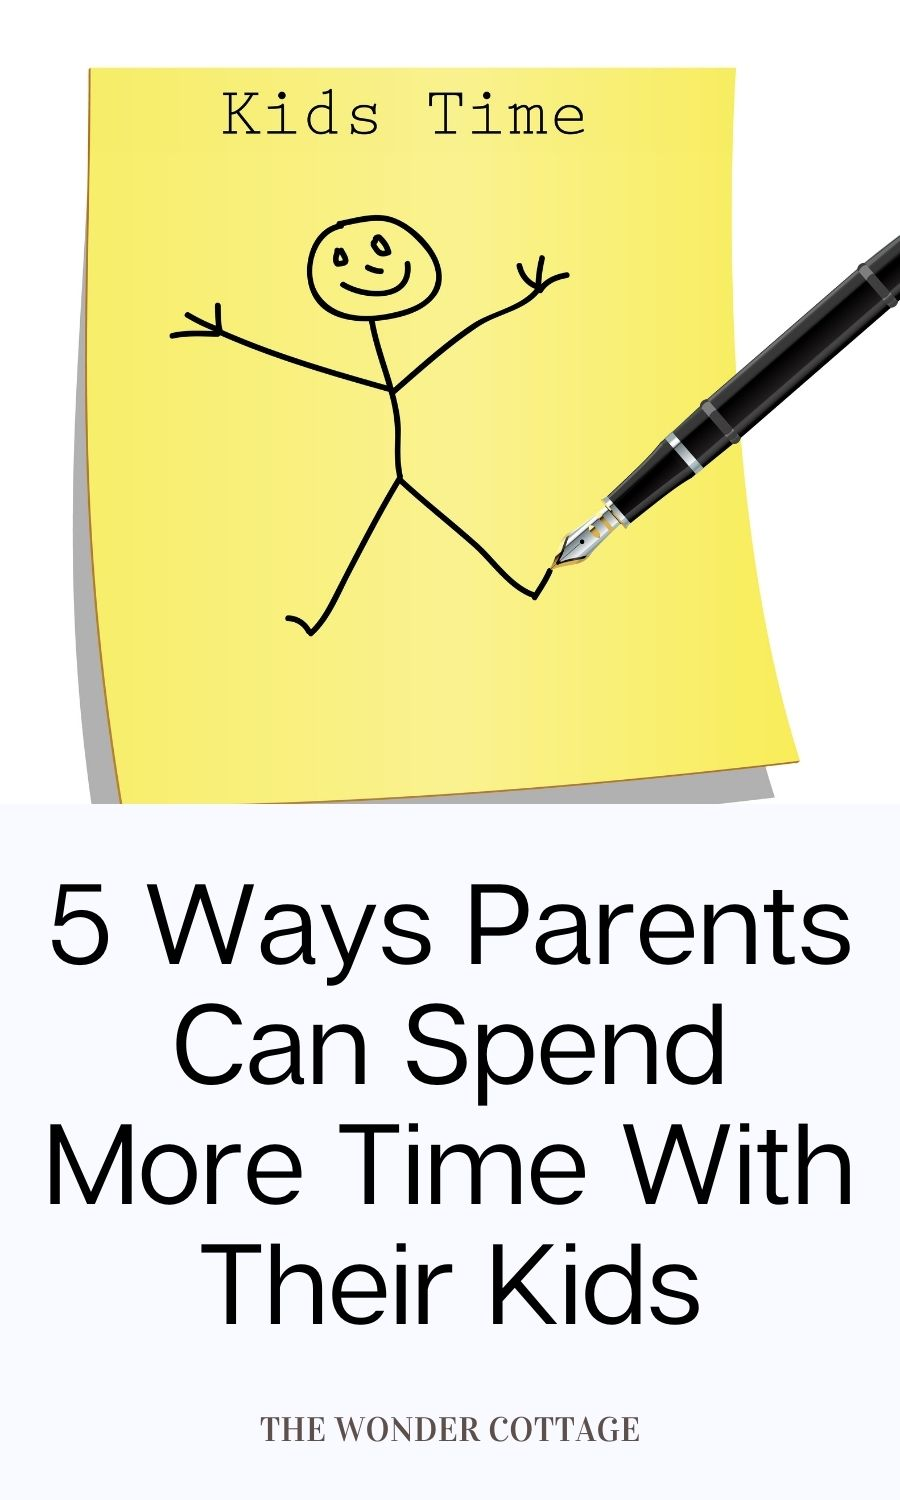 5 Best Ways Parents Can Increase Time With Their Kids